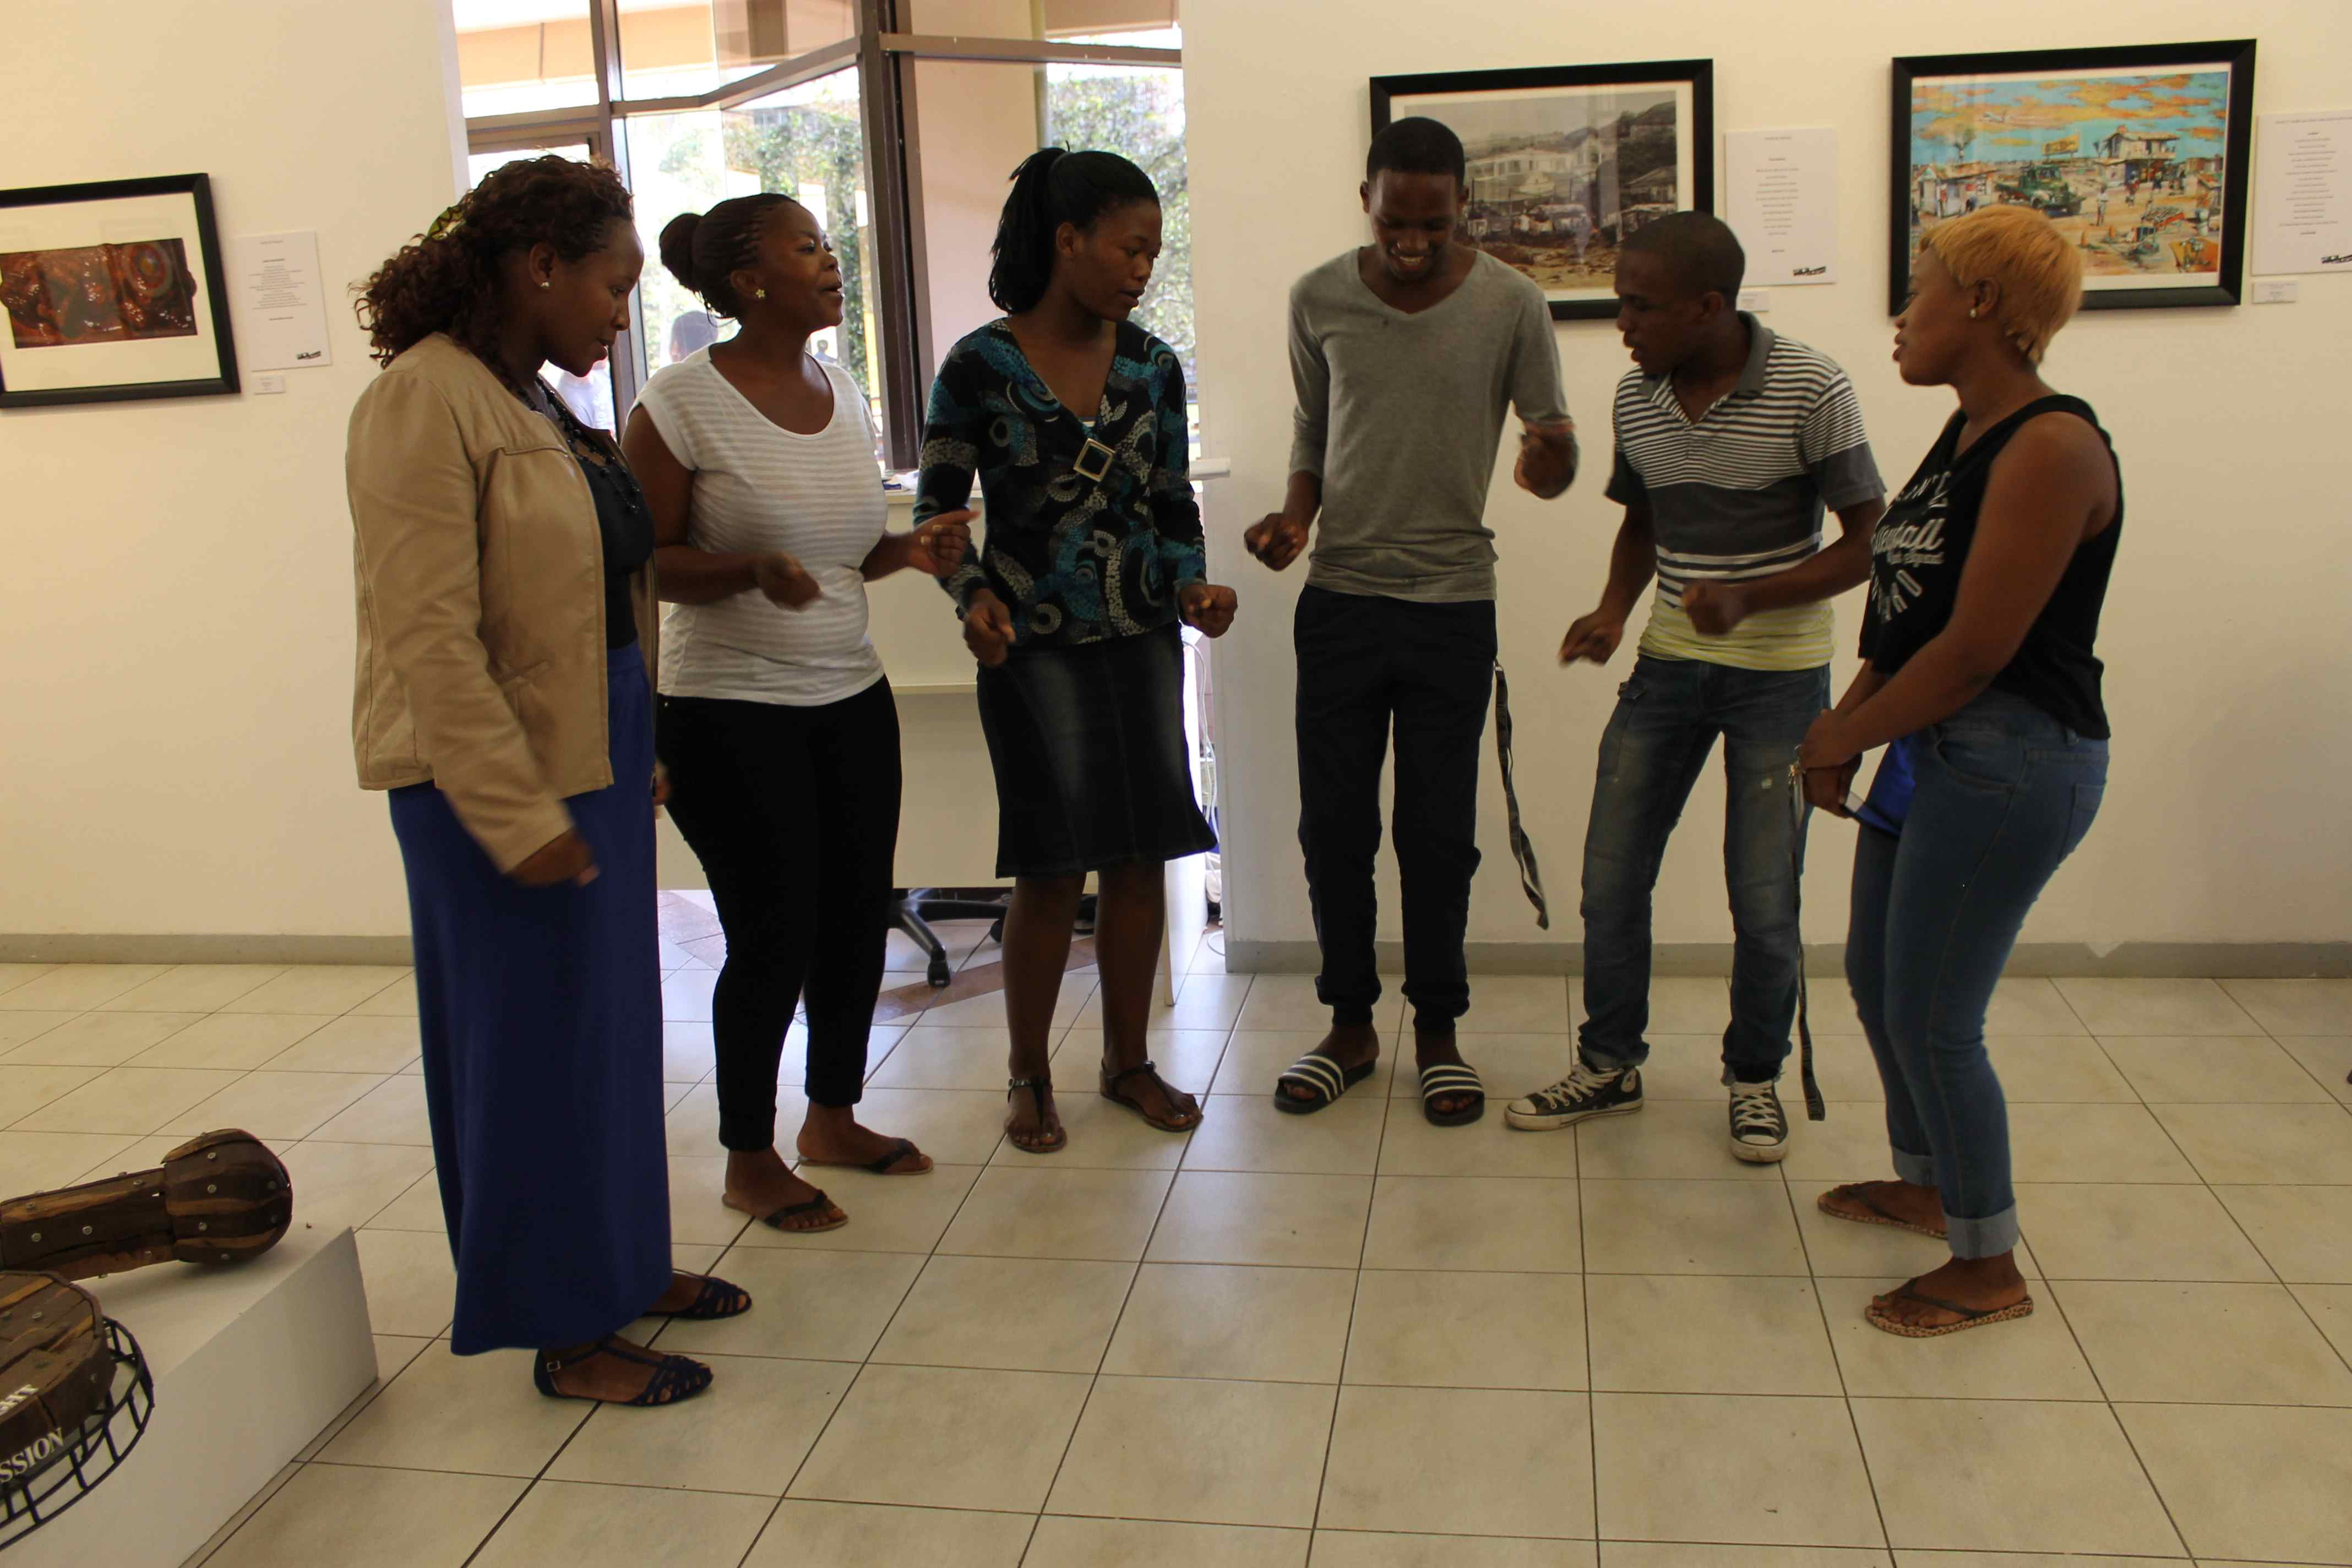 Students sing to challenge stigma related to HIV/AIDS